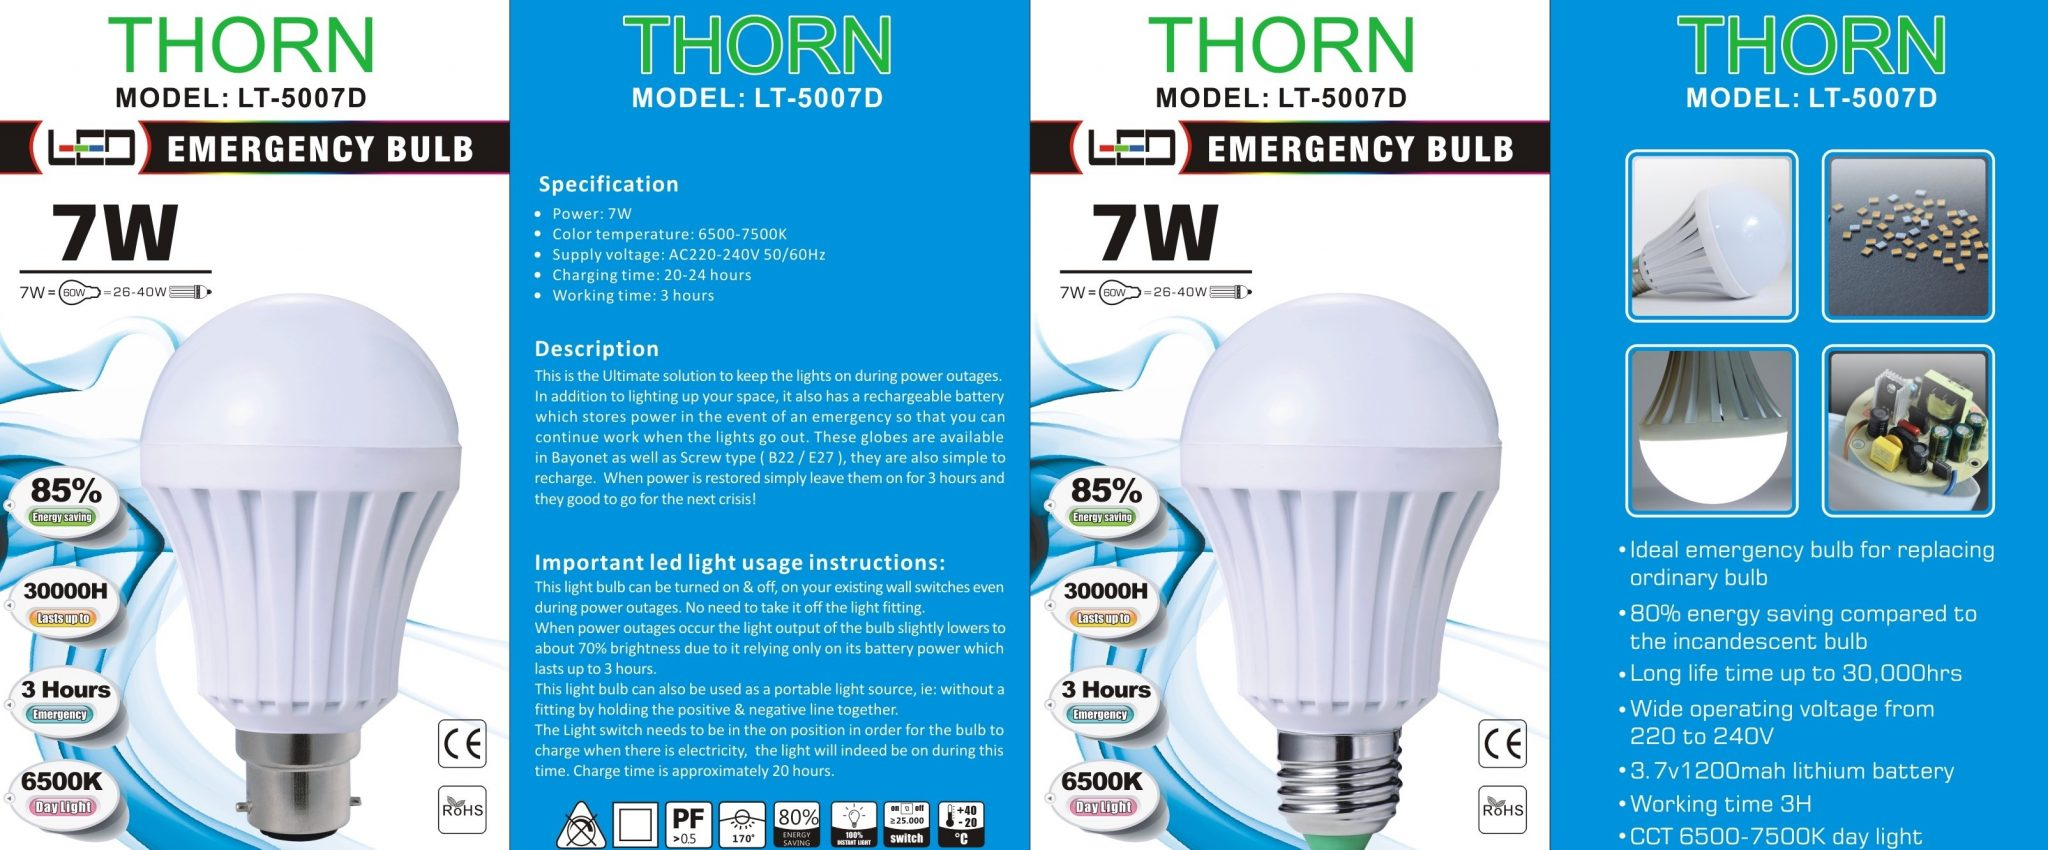 Thornelectrical